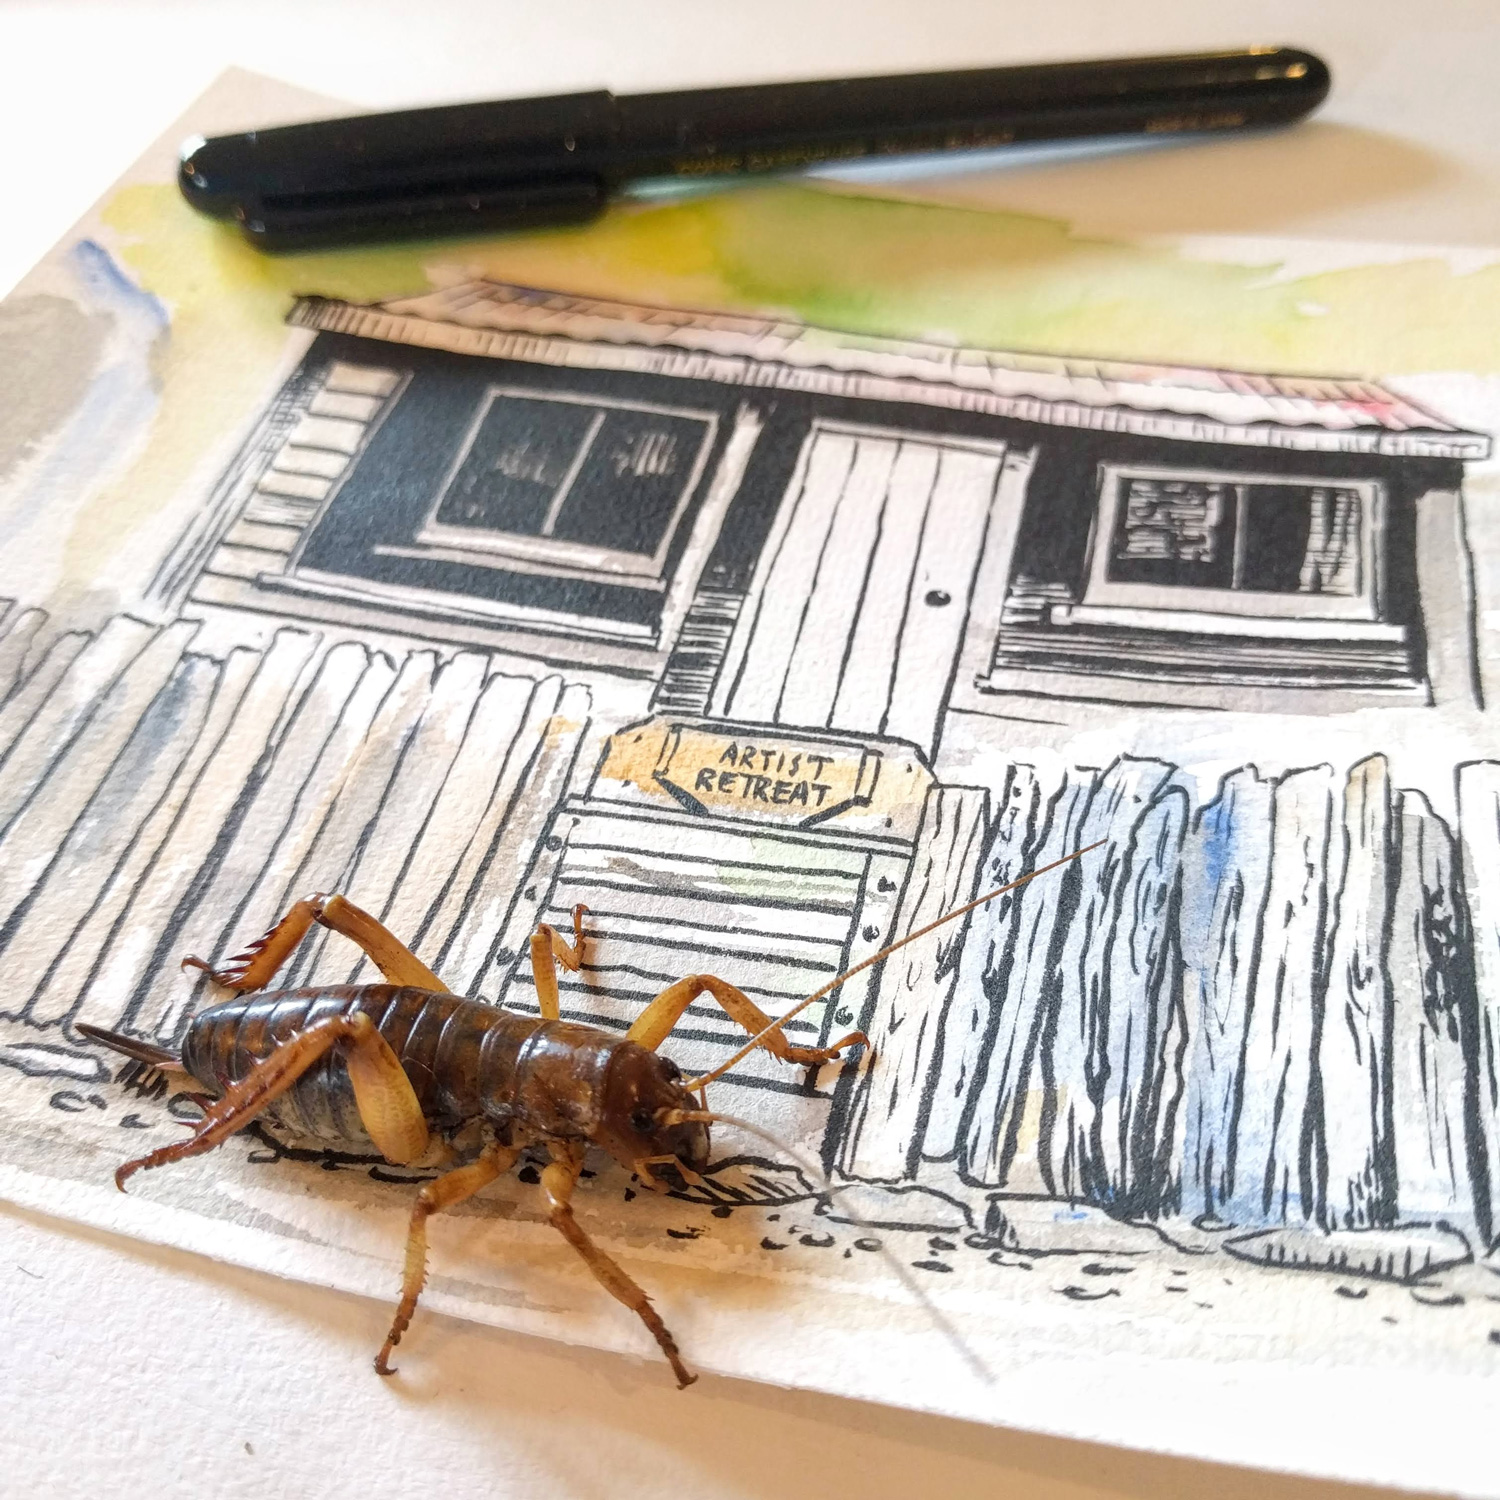 blog-hinewai-artist-retreat-weta-drawing.jpg